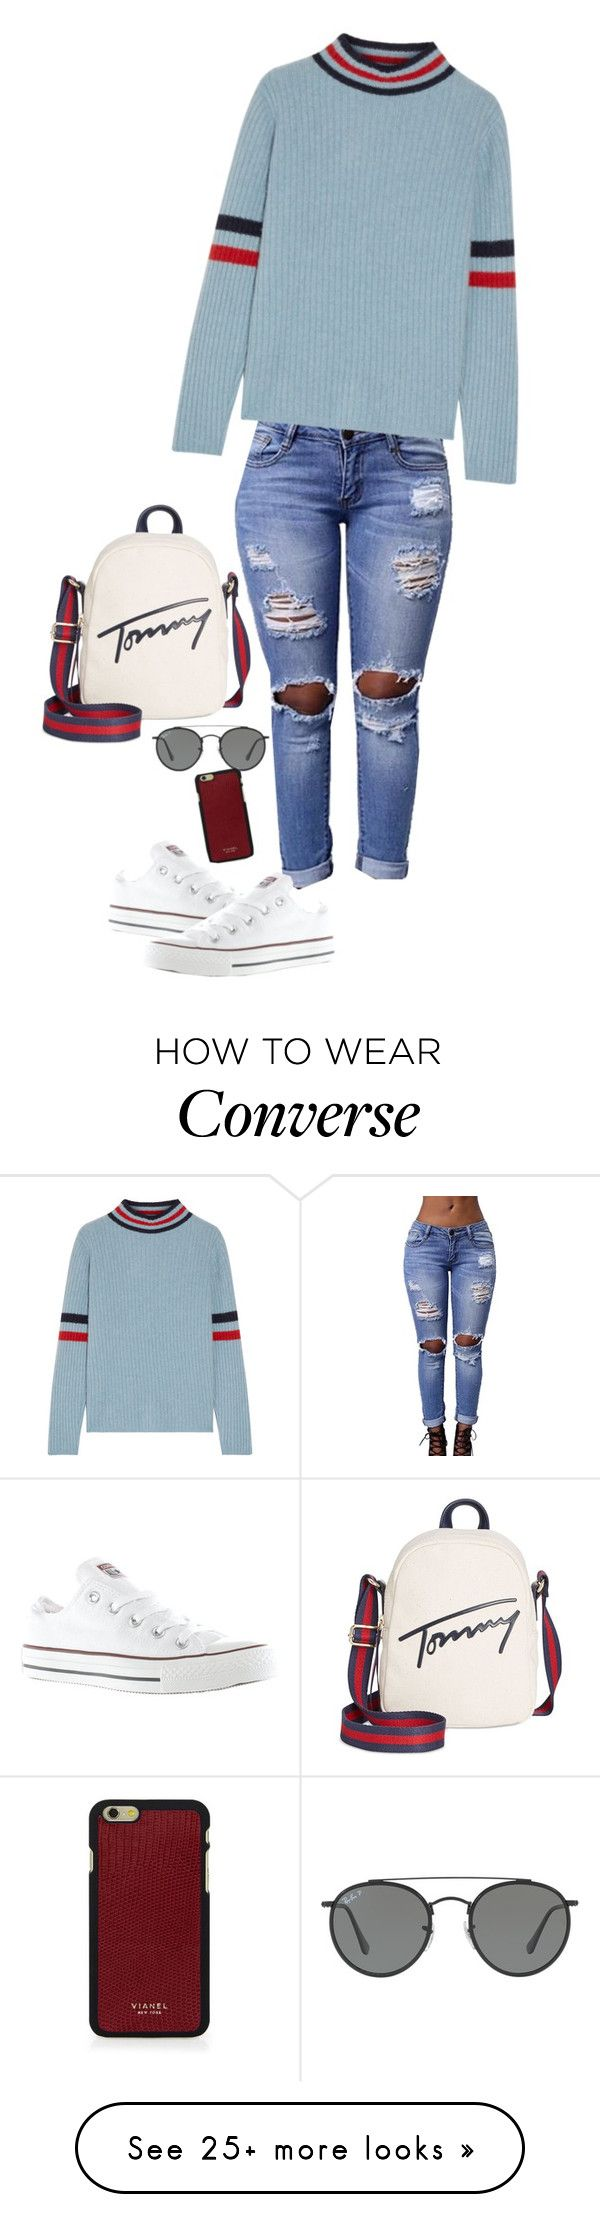 """Tommy"" by kiara-tuggle on Polyvore featuring The Elder Statesman, Converse, Tommy Hilfiger, Ray-Ban and Vianel"